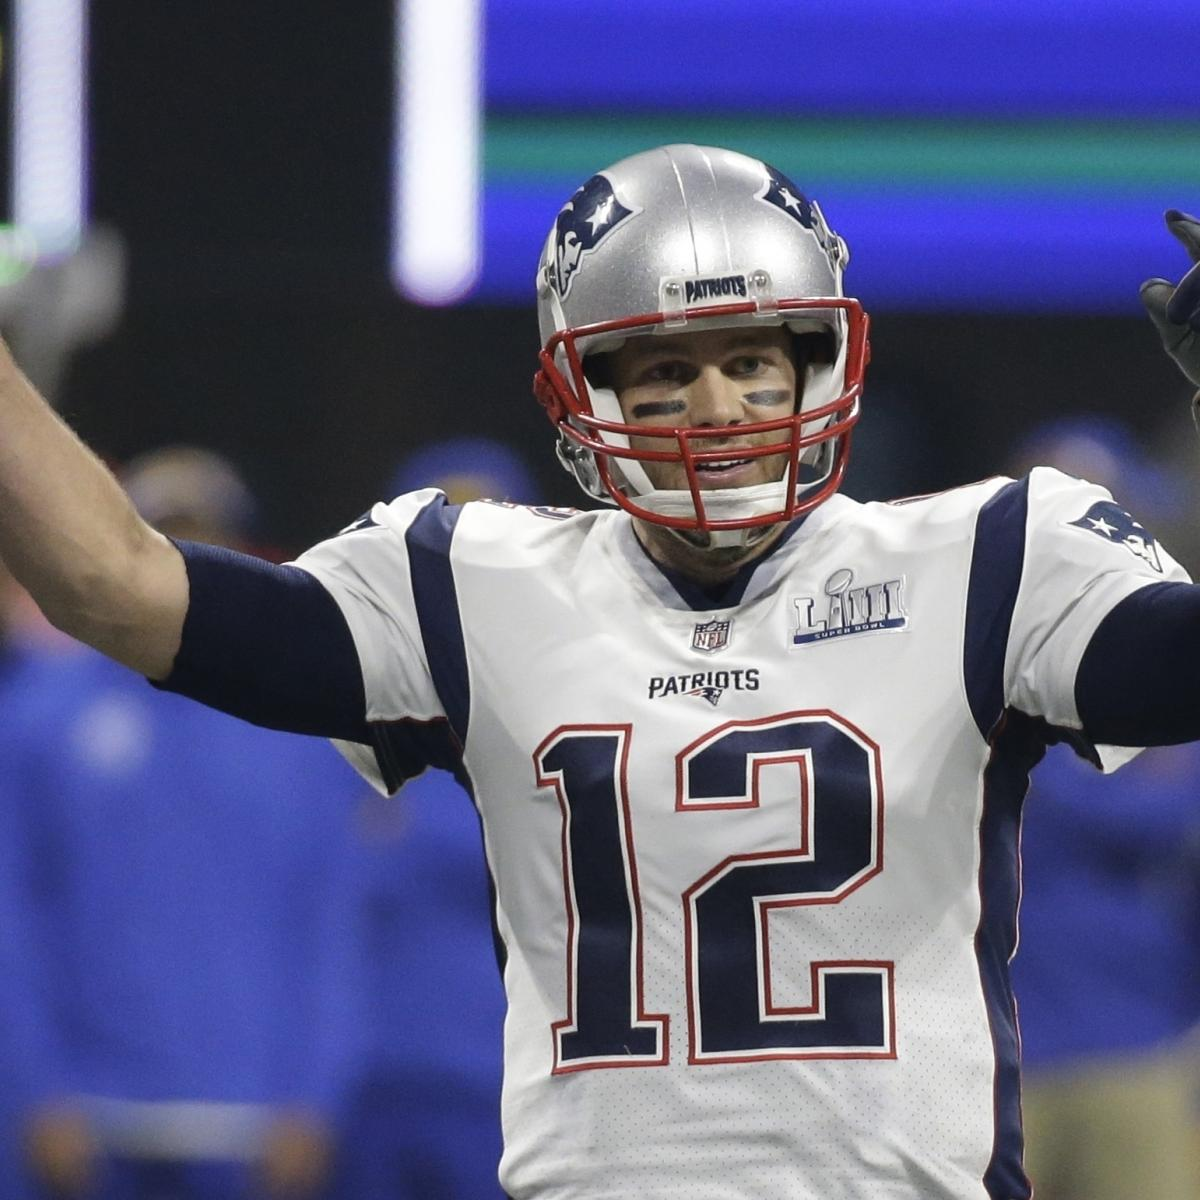 New England Patriots quarterback Tom Brady led all NFL players in officially licensed merchandise sold during the one-year period from March 1, 2018, through Feb. 28, 2019..